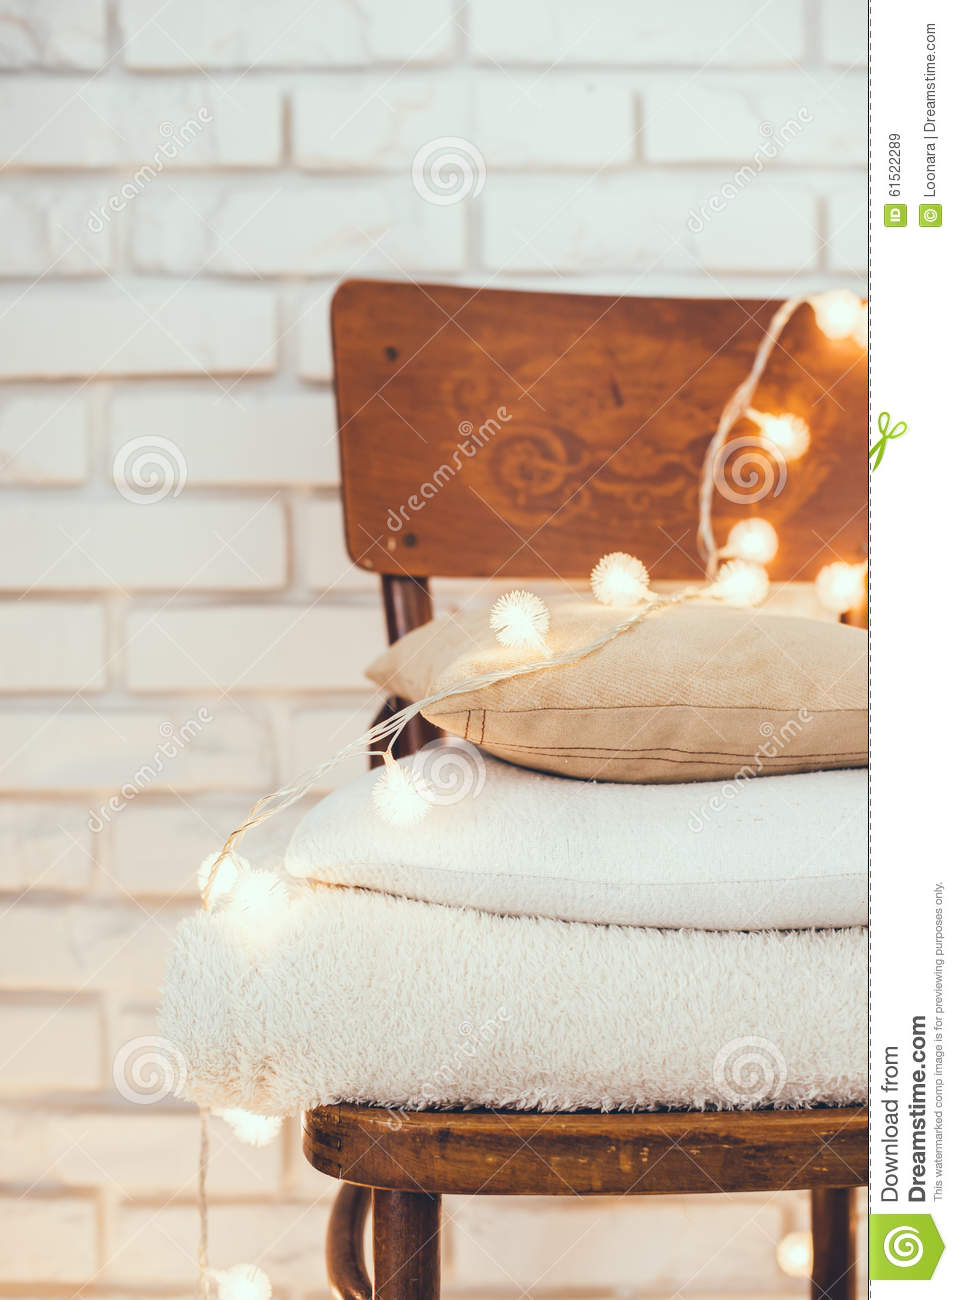 Warm home decor stock image image of peaceful chair 61522289 - Wooden home decor to provide warm atmosphere ...